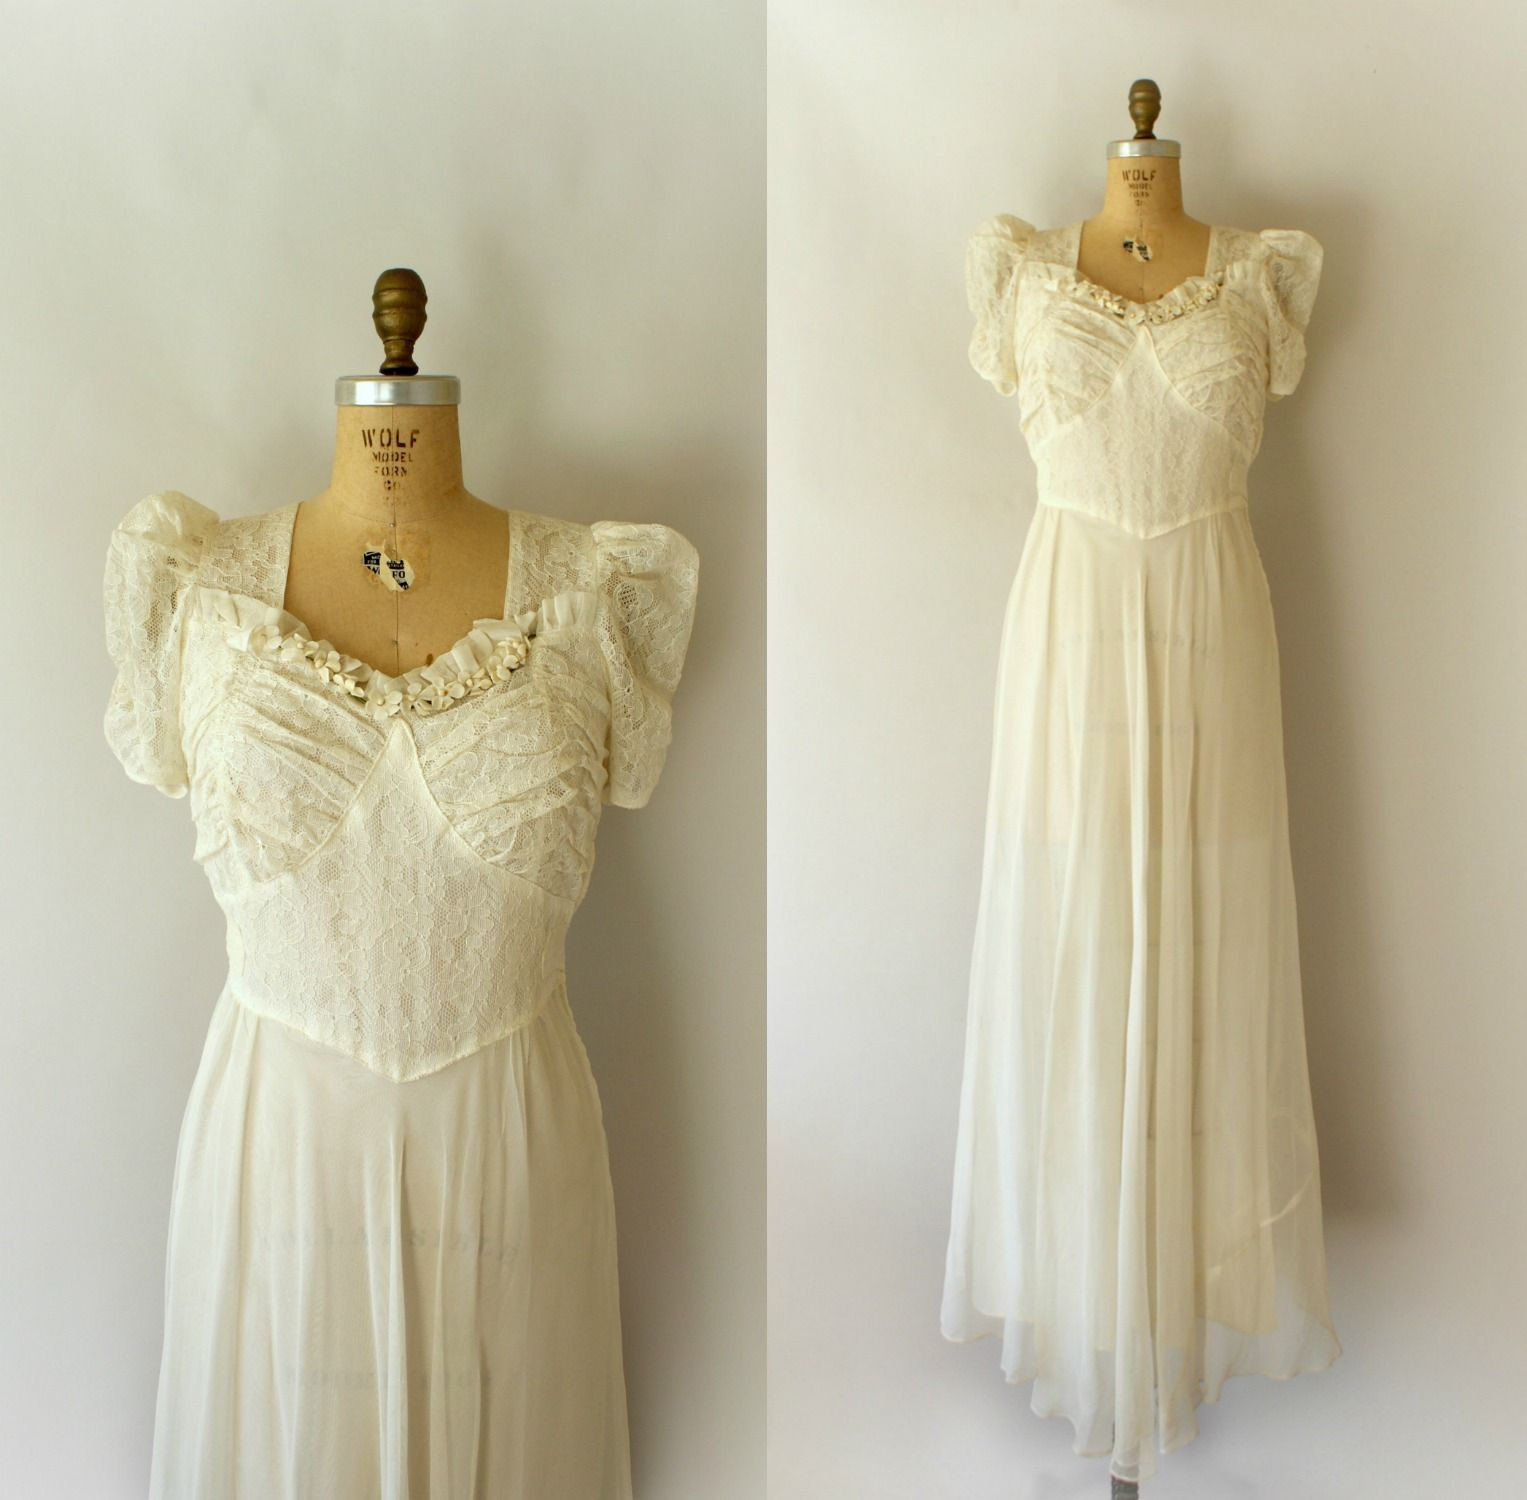 Vintage s lace and tulle wedding dress from sweet bee finds